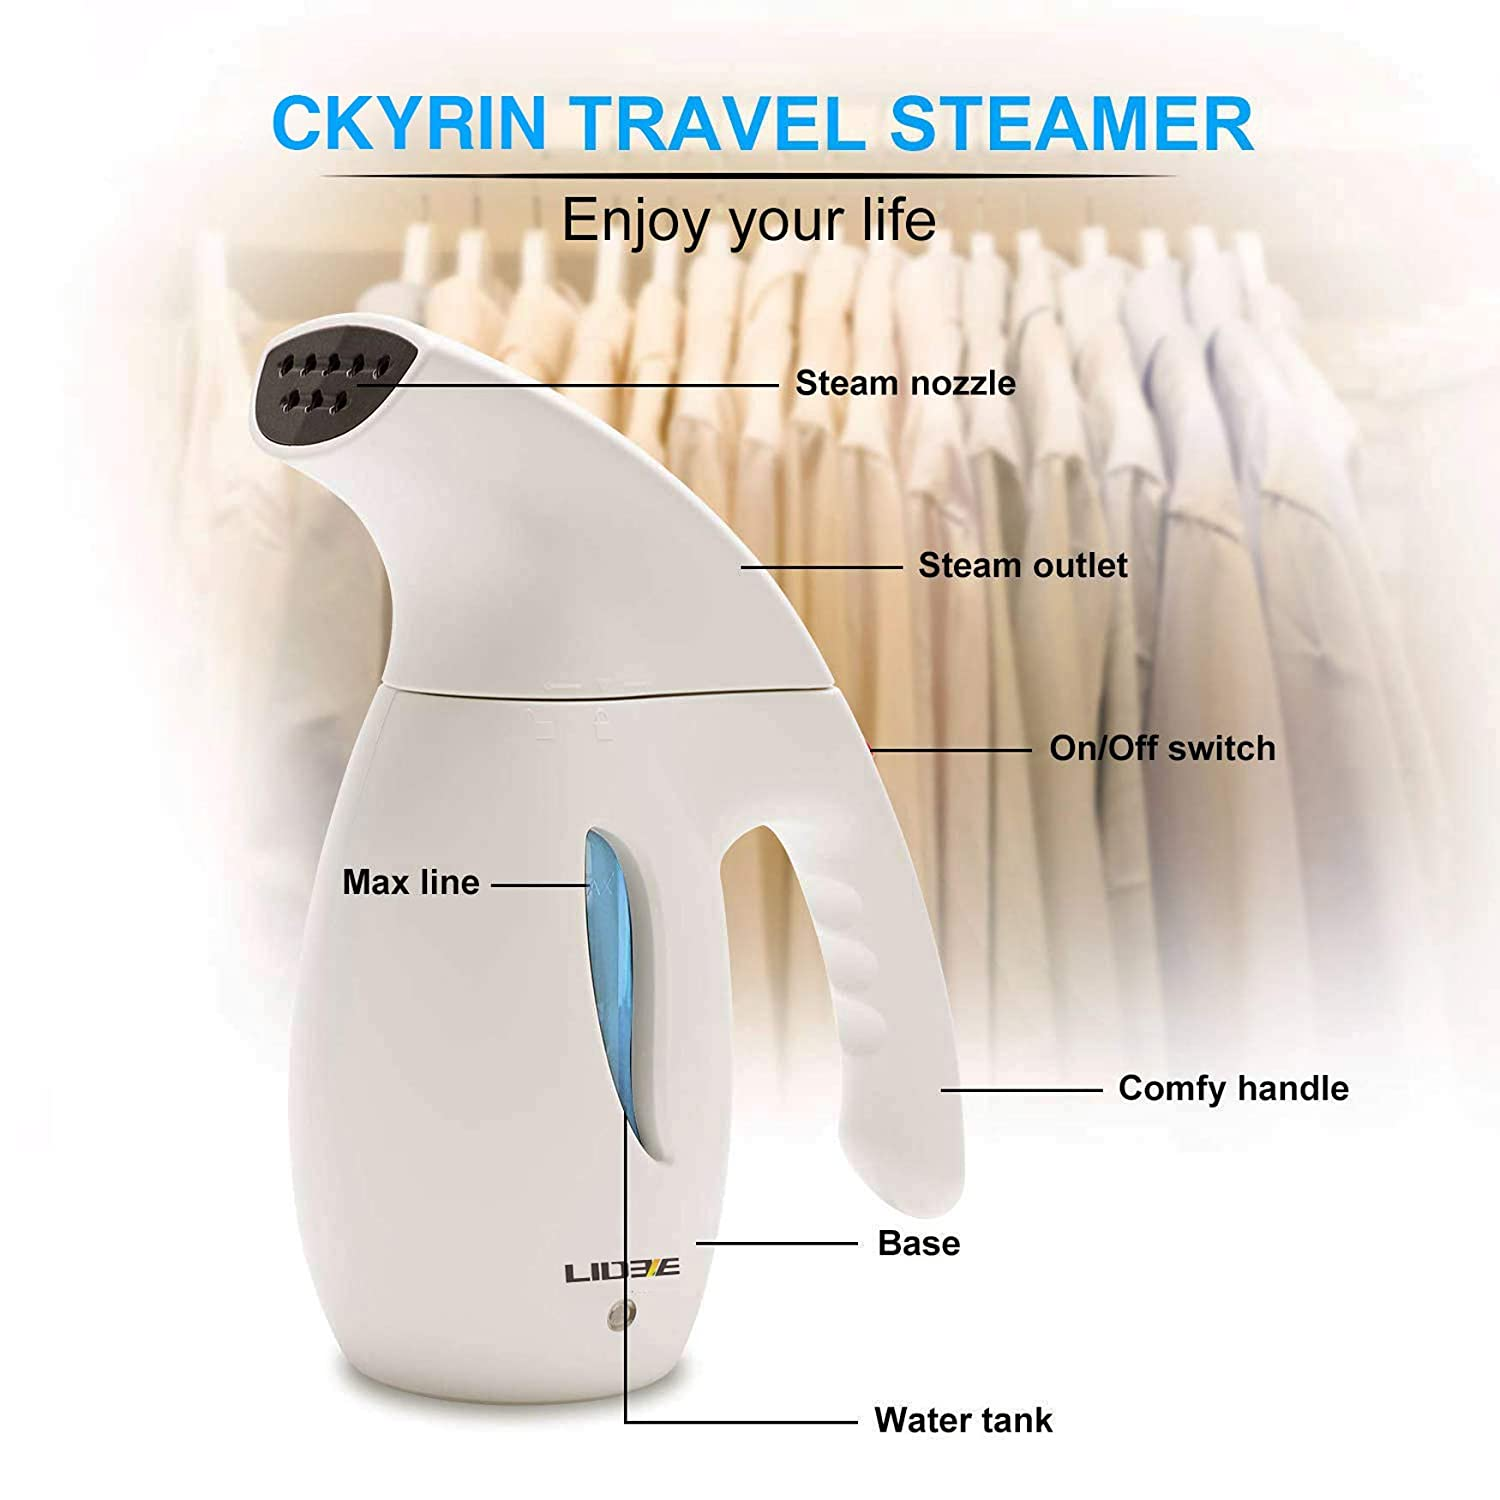 LIDELE 180ml Portable Garment Steamer Iron Household minil Ironing Machine Hanging Fabric Steamer Travel Shirt Handheld Clothes Clothing Steamer for Home and Travel